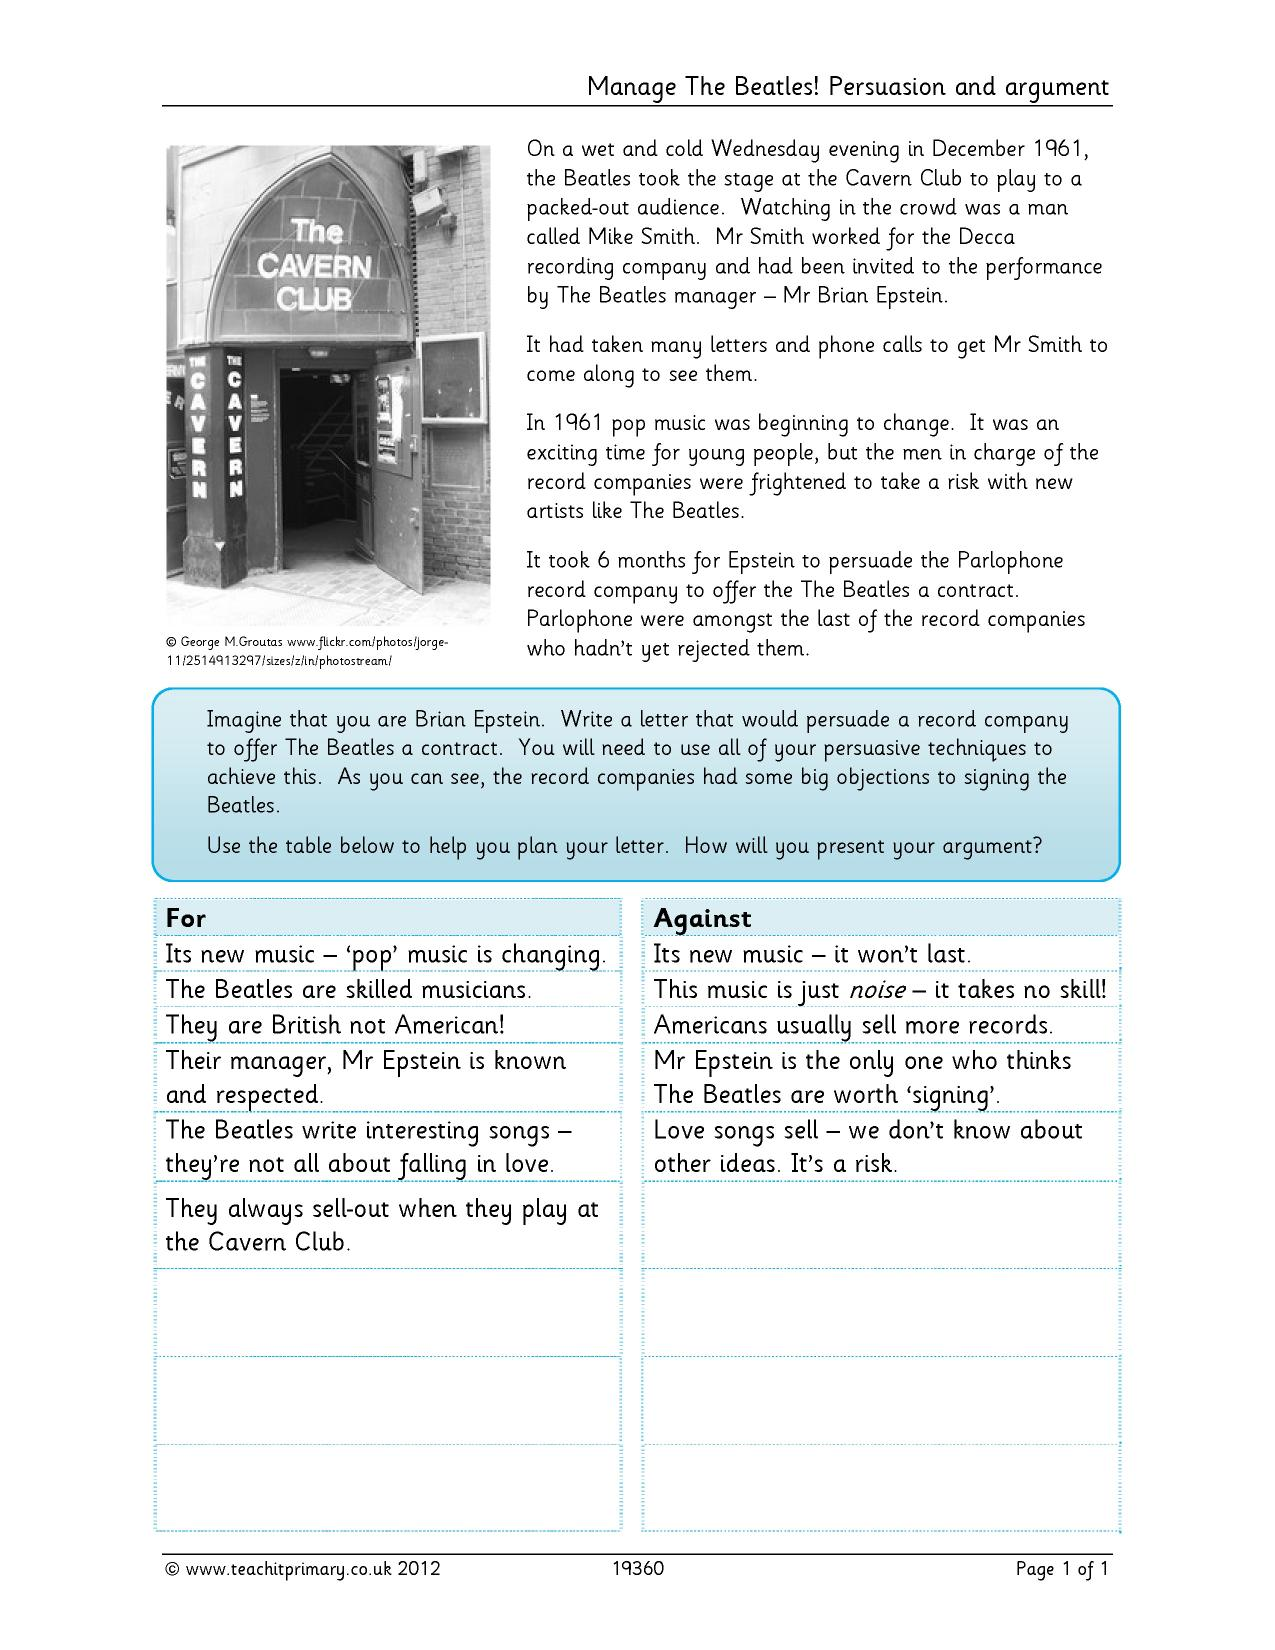 persuasive writing primary resources An english lesson pack for ages 7-11 using guardian articles, looking at persuasive writing that promotes a particular point of view or argument in particular.